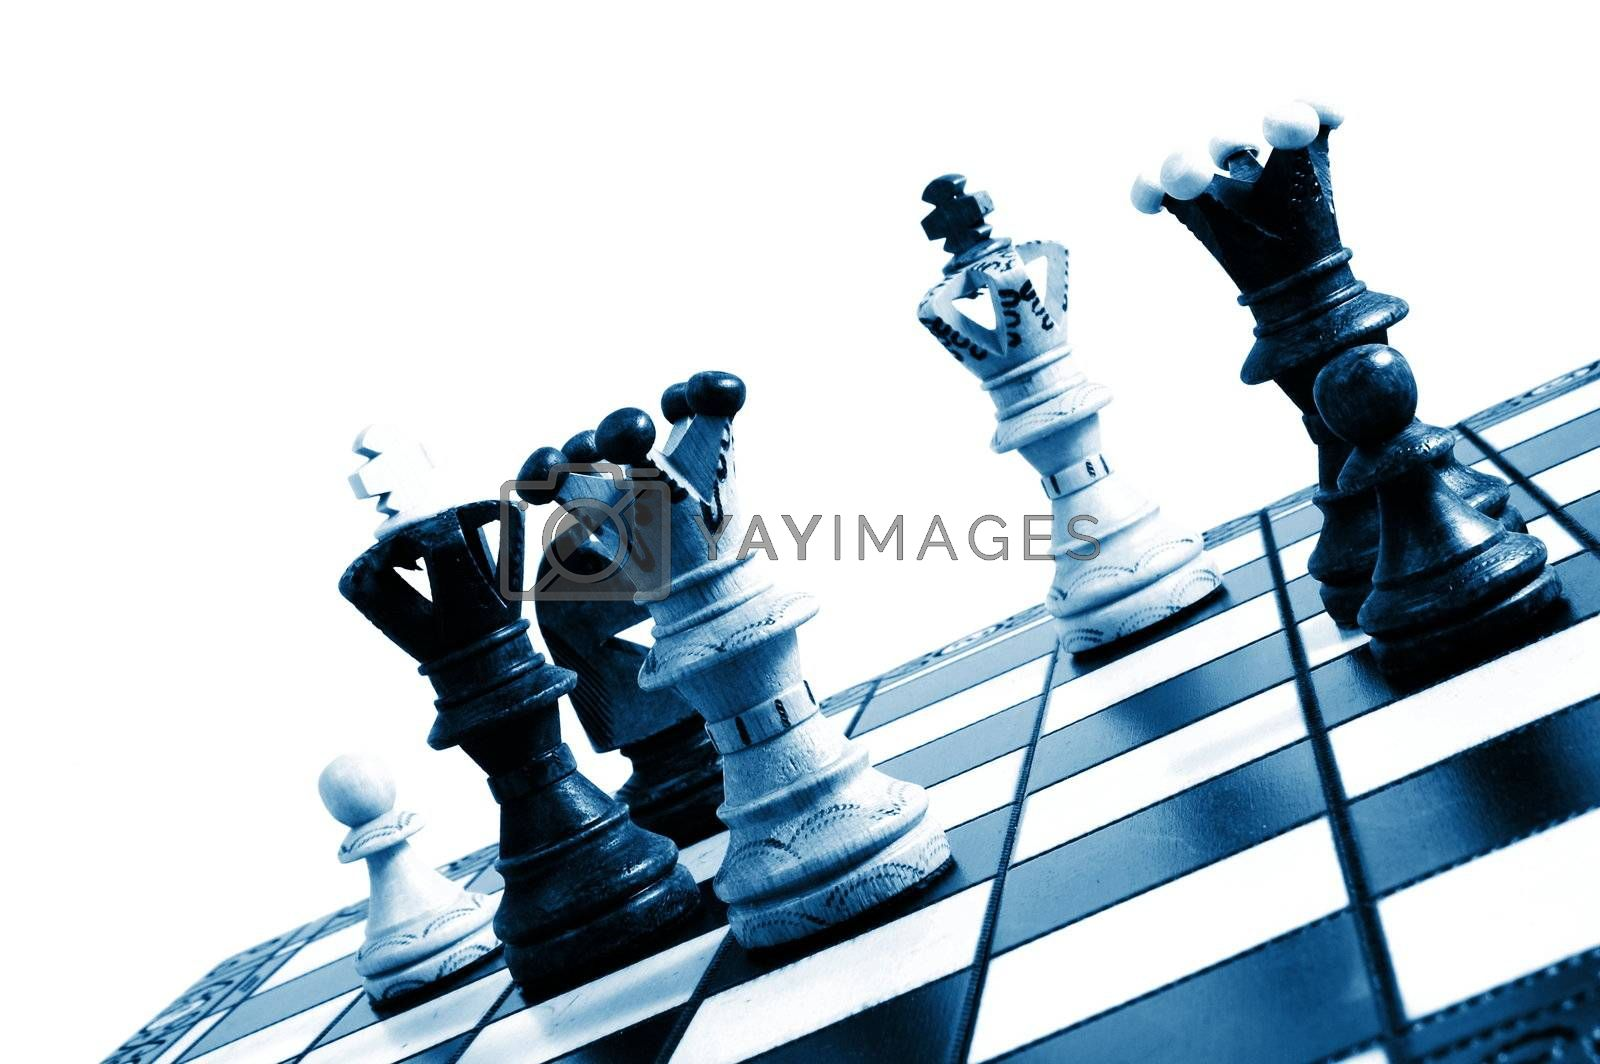 chess pieces on a chess board showing concept for strategic business